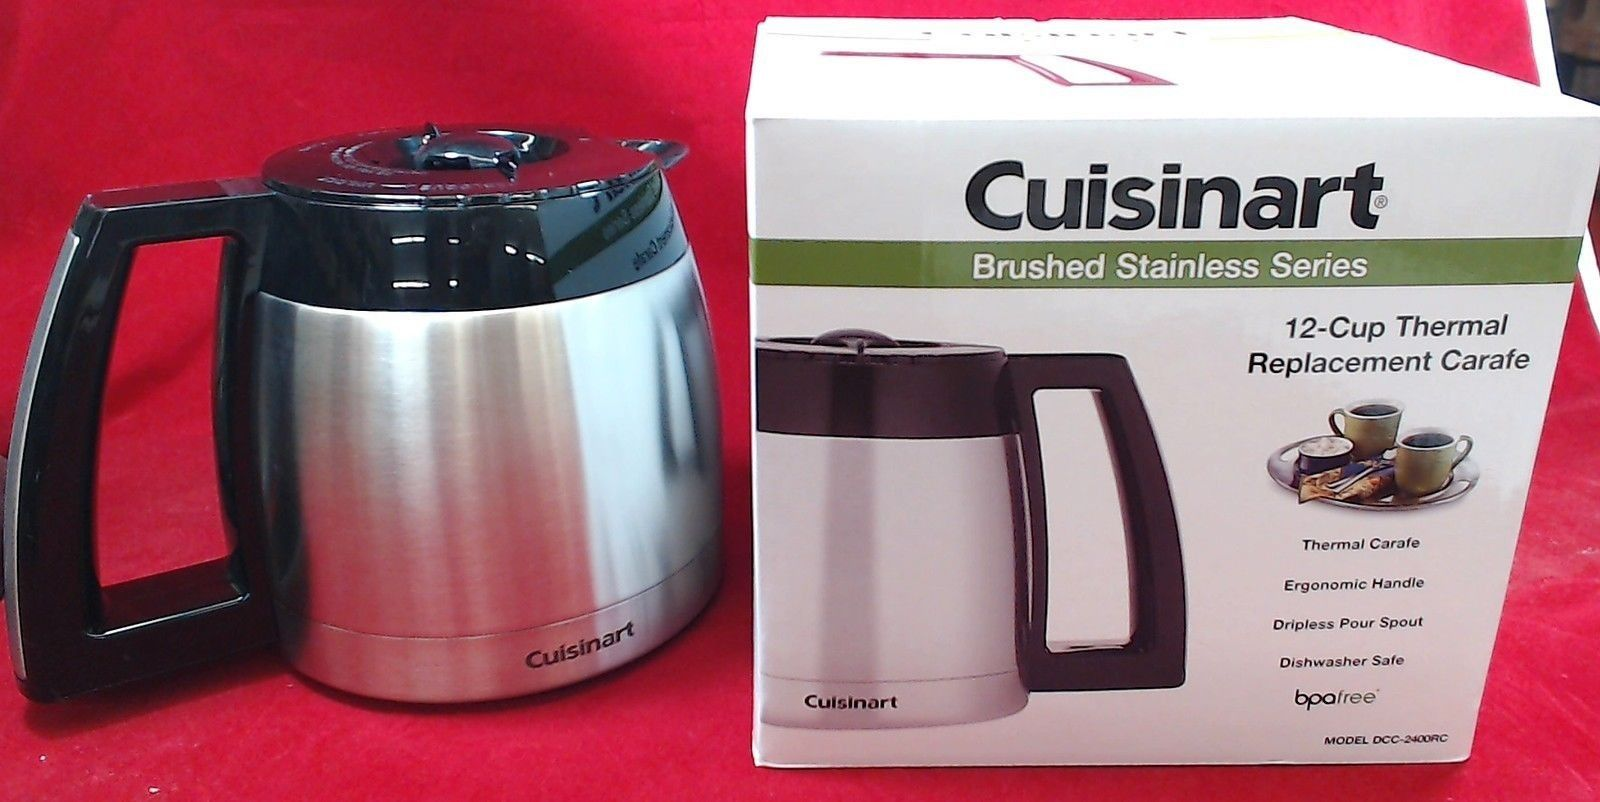 Coffee Maker Stainless Carafe : Cuisinart Coffee Maker 12-Cup Stainless Steel Carafe, DCC-2400RC eBay